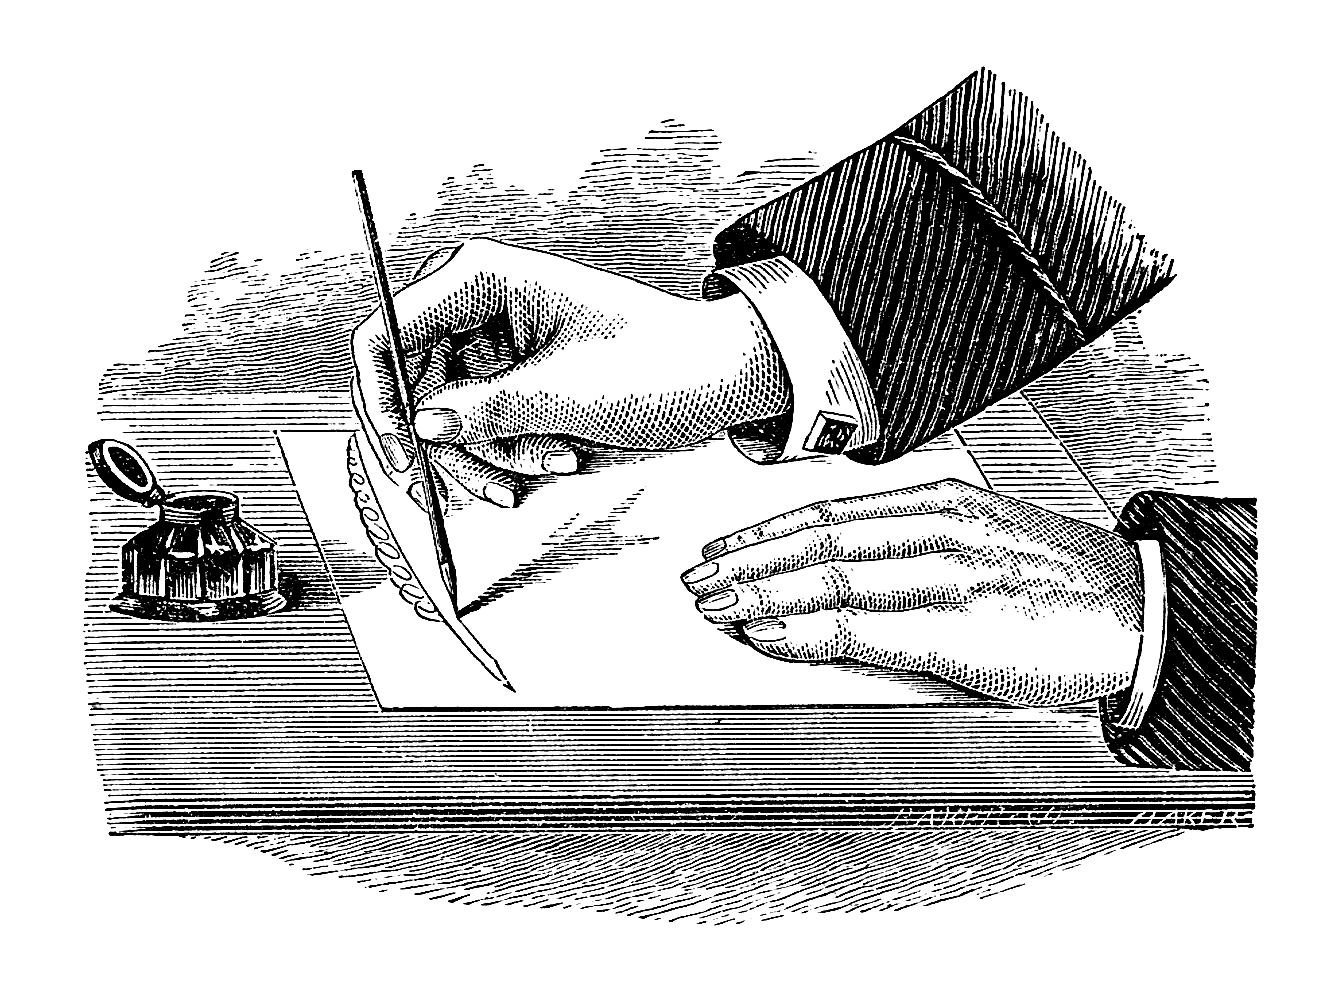 Antique Images Black and White Illustration Vintage Hand and Writing 1335x997